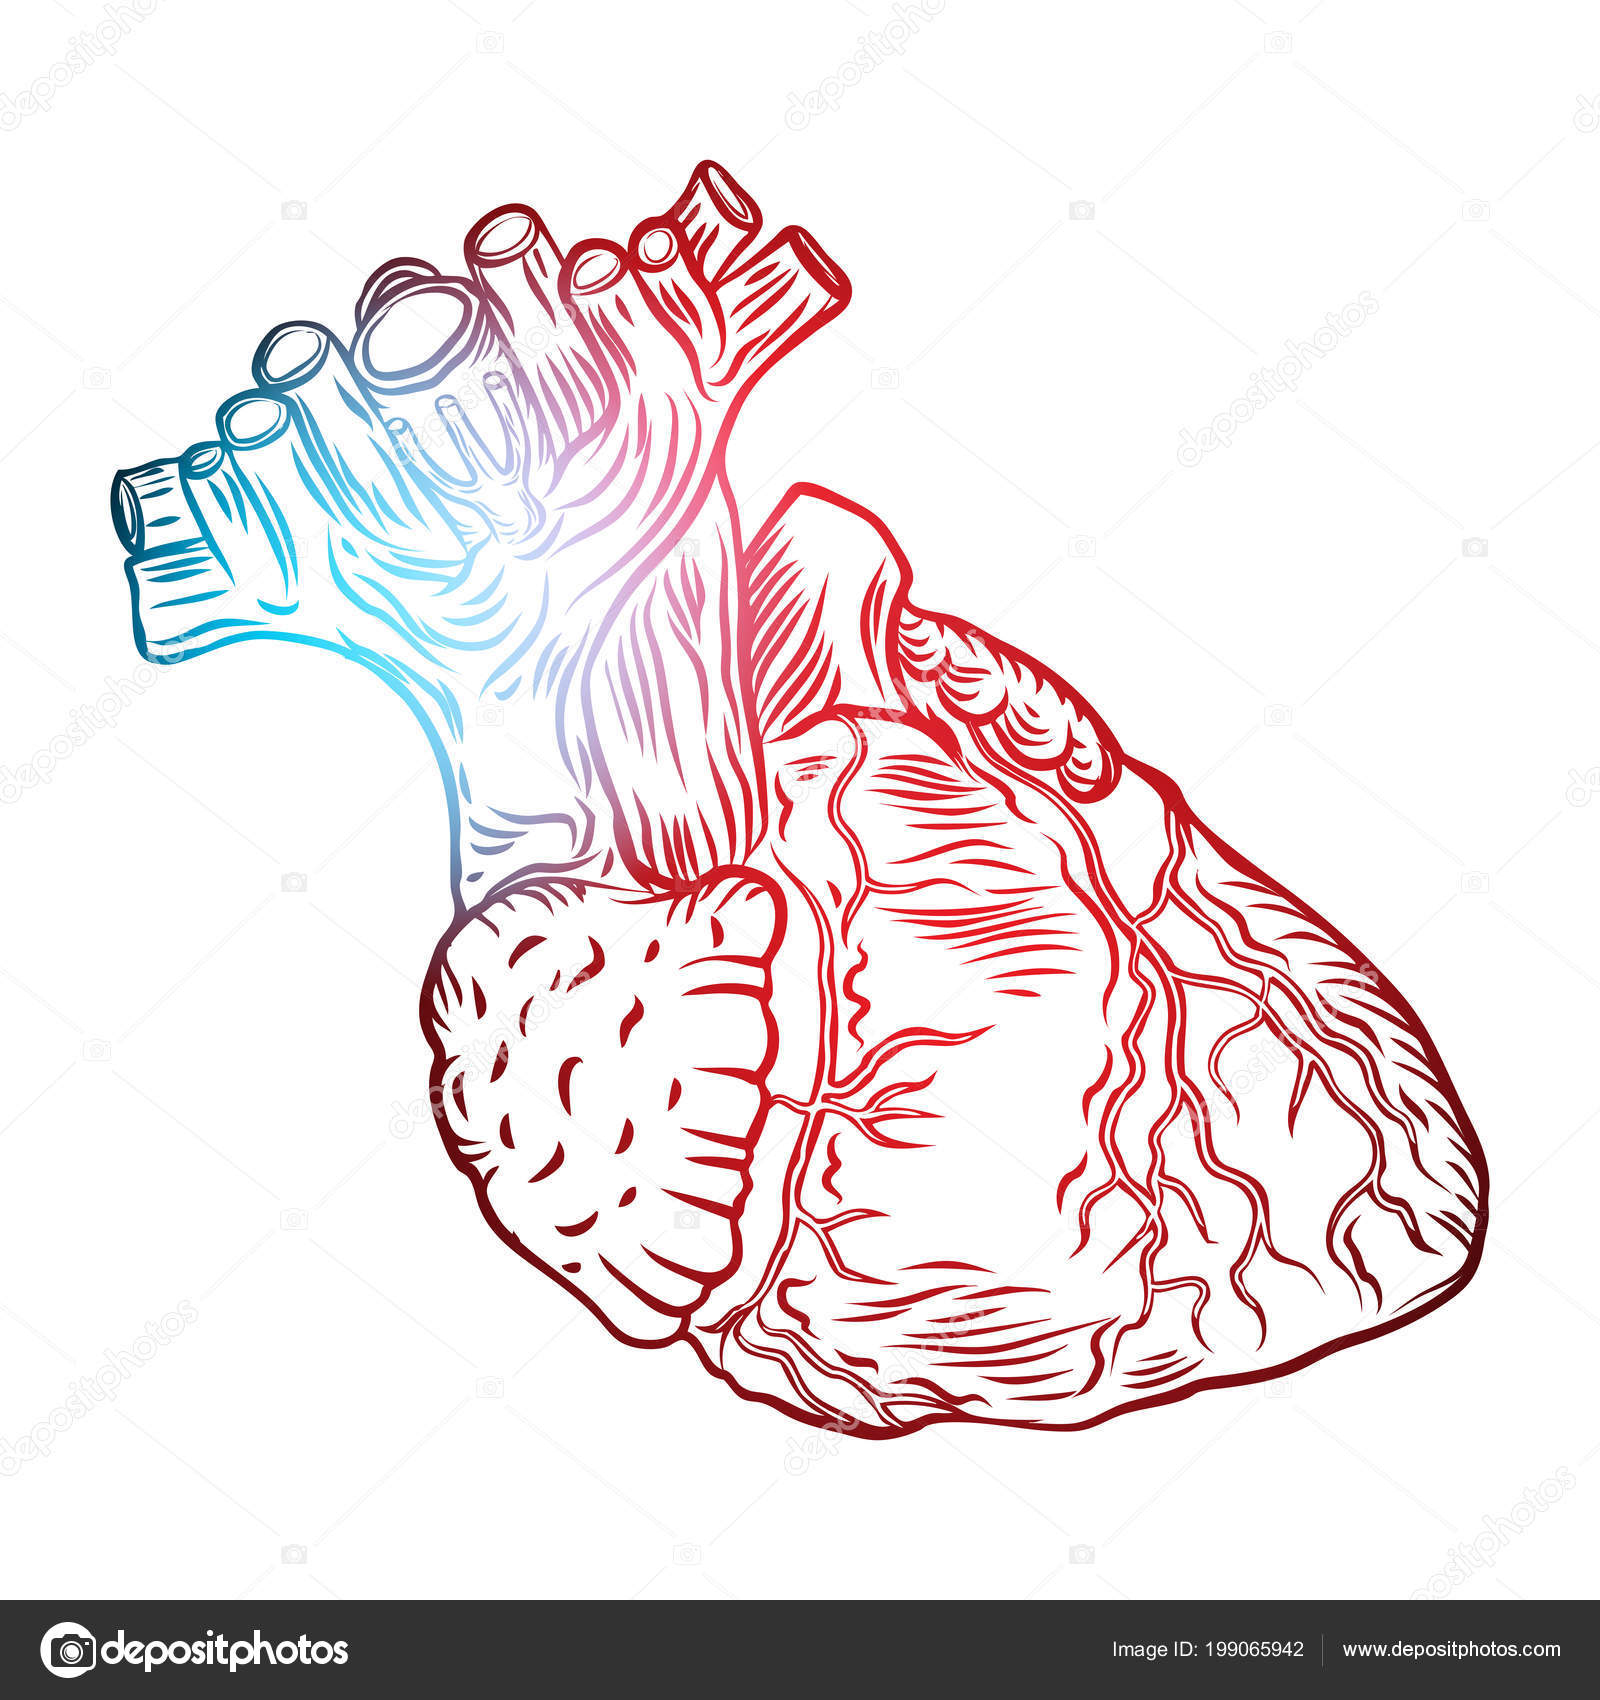 Sketched Hand Drawn Line Art Decorative Human Heart Anatomy Details